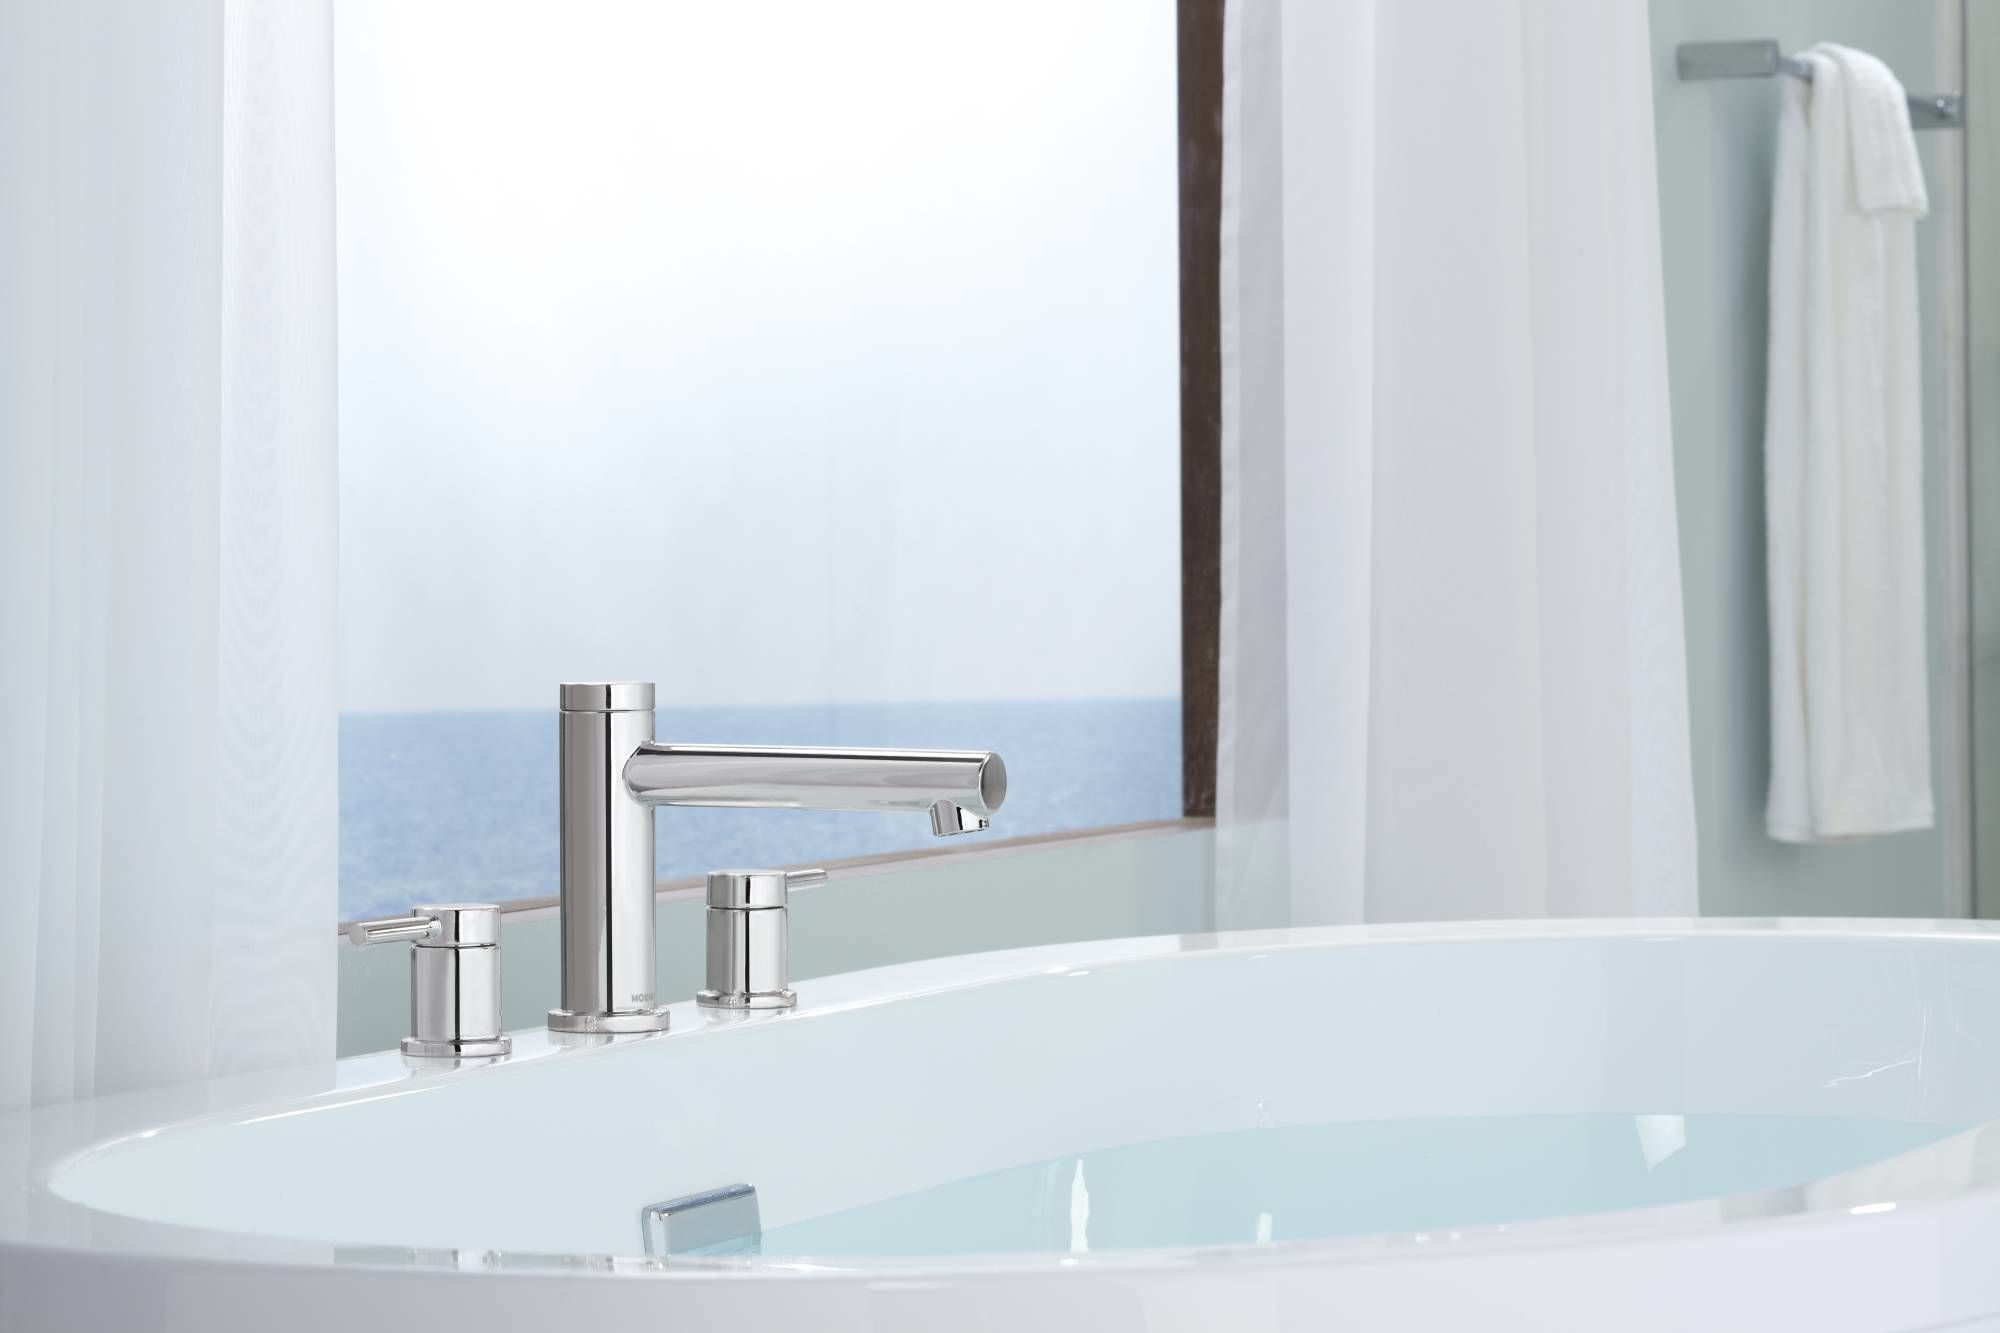 Moen T393BN Brushed Nickel Deck Mounted Roman Tub Faucet Trim from ...